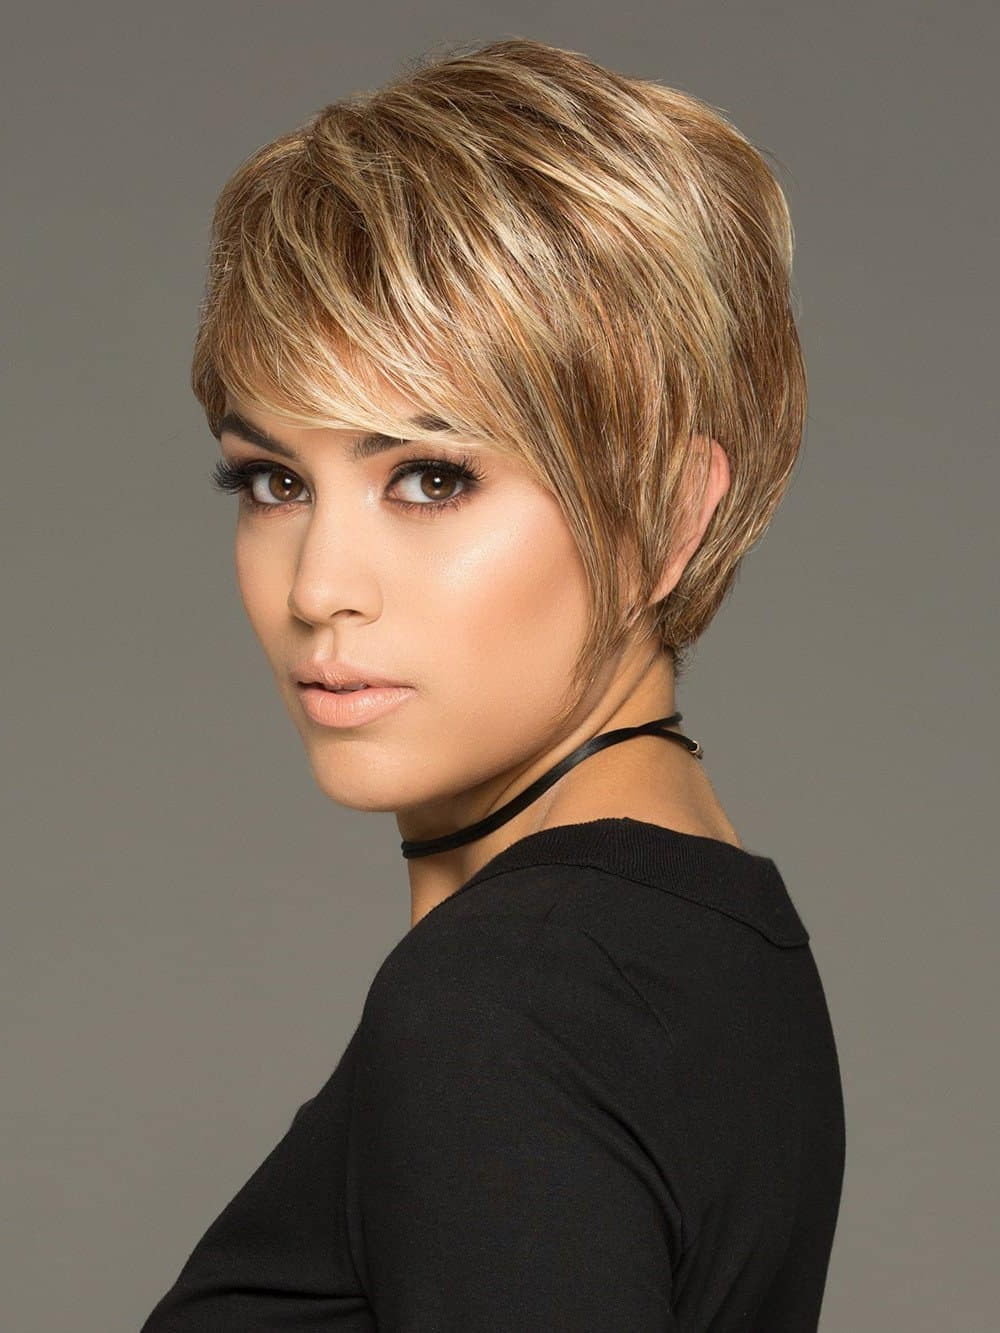 10 Strawberry Blonde Hairstyle To Match Your Short Locks Throughout Short Haircuts Bobs Crops (View 4 of 26)